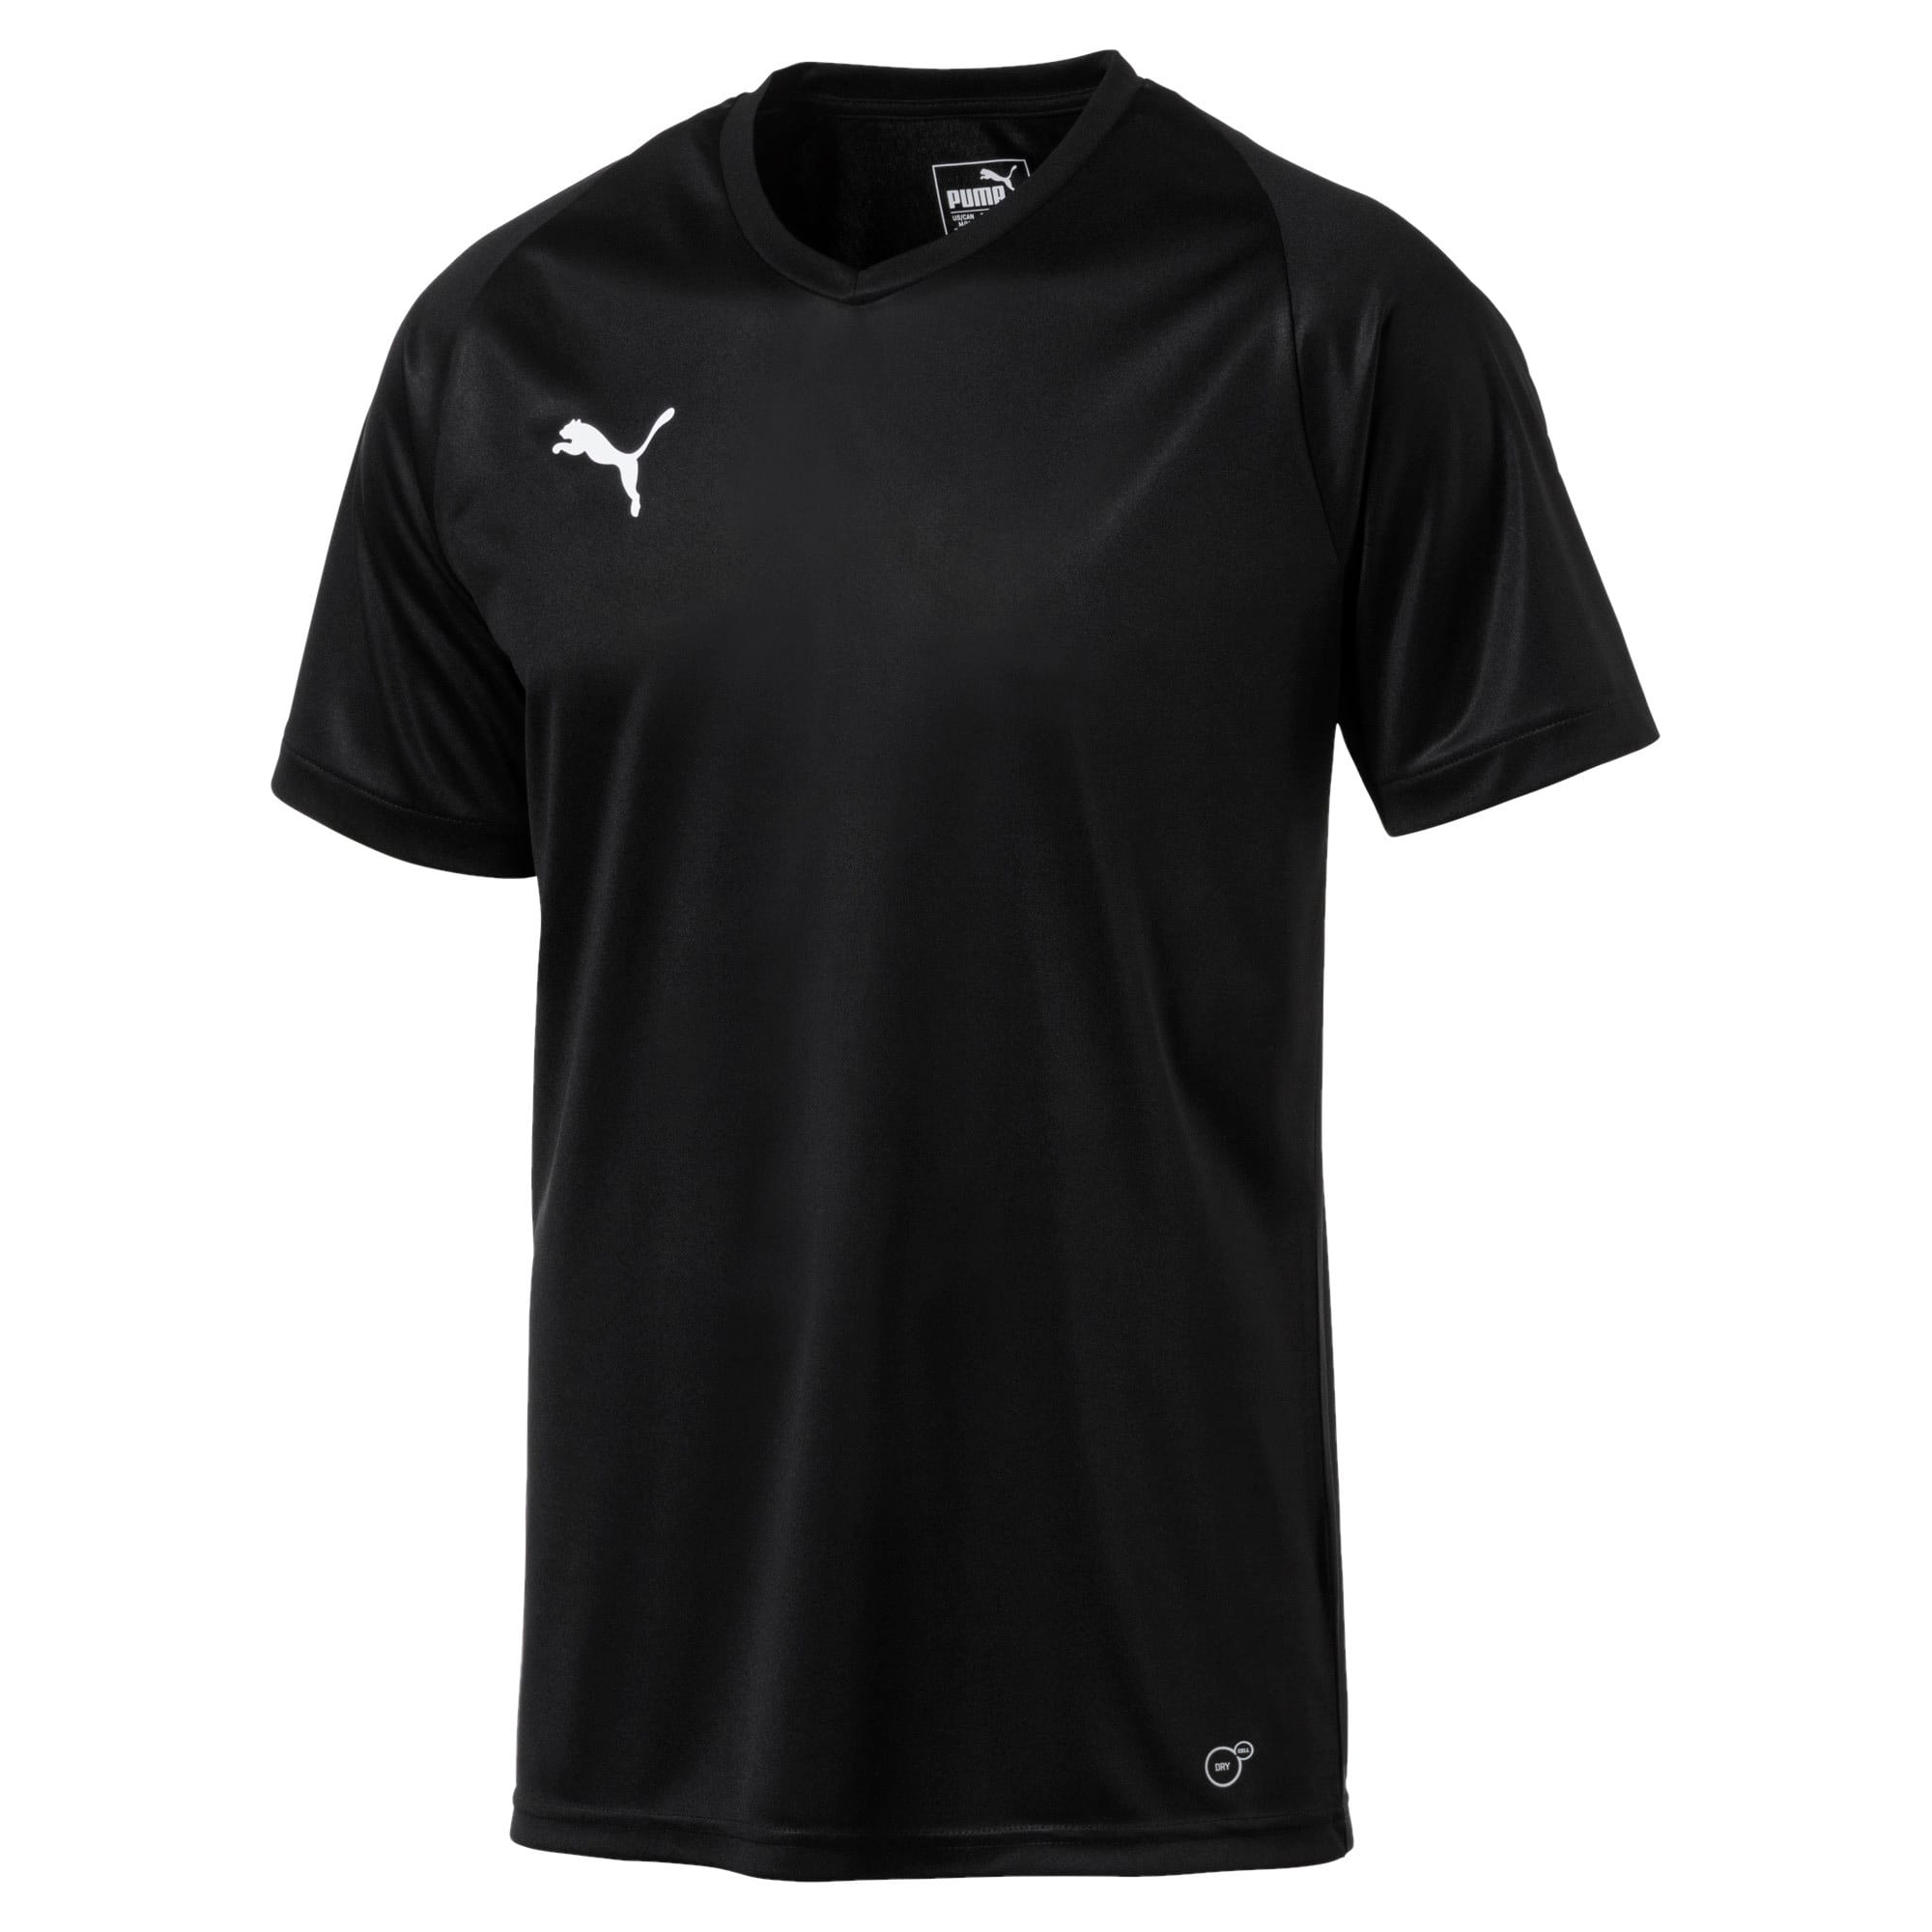 Thumbnail 4 of Maillot LIGA Core pour homme, Puma Black-Puma White, medium